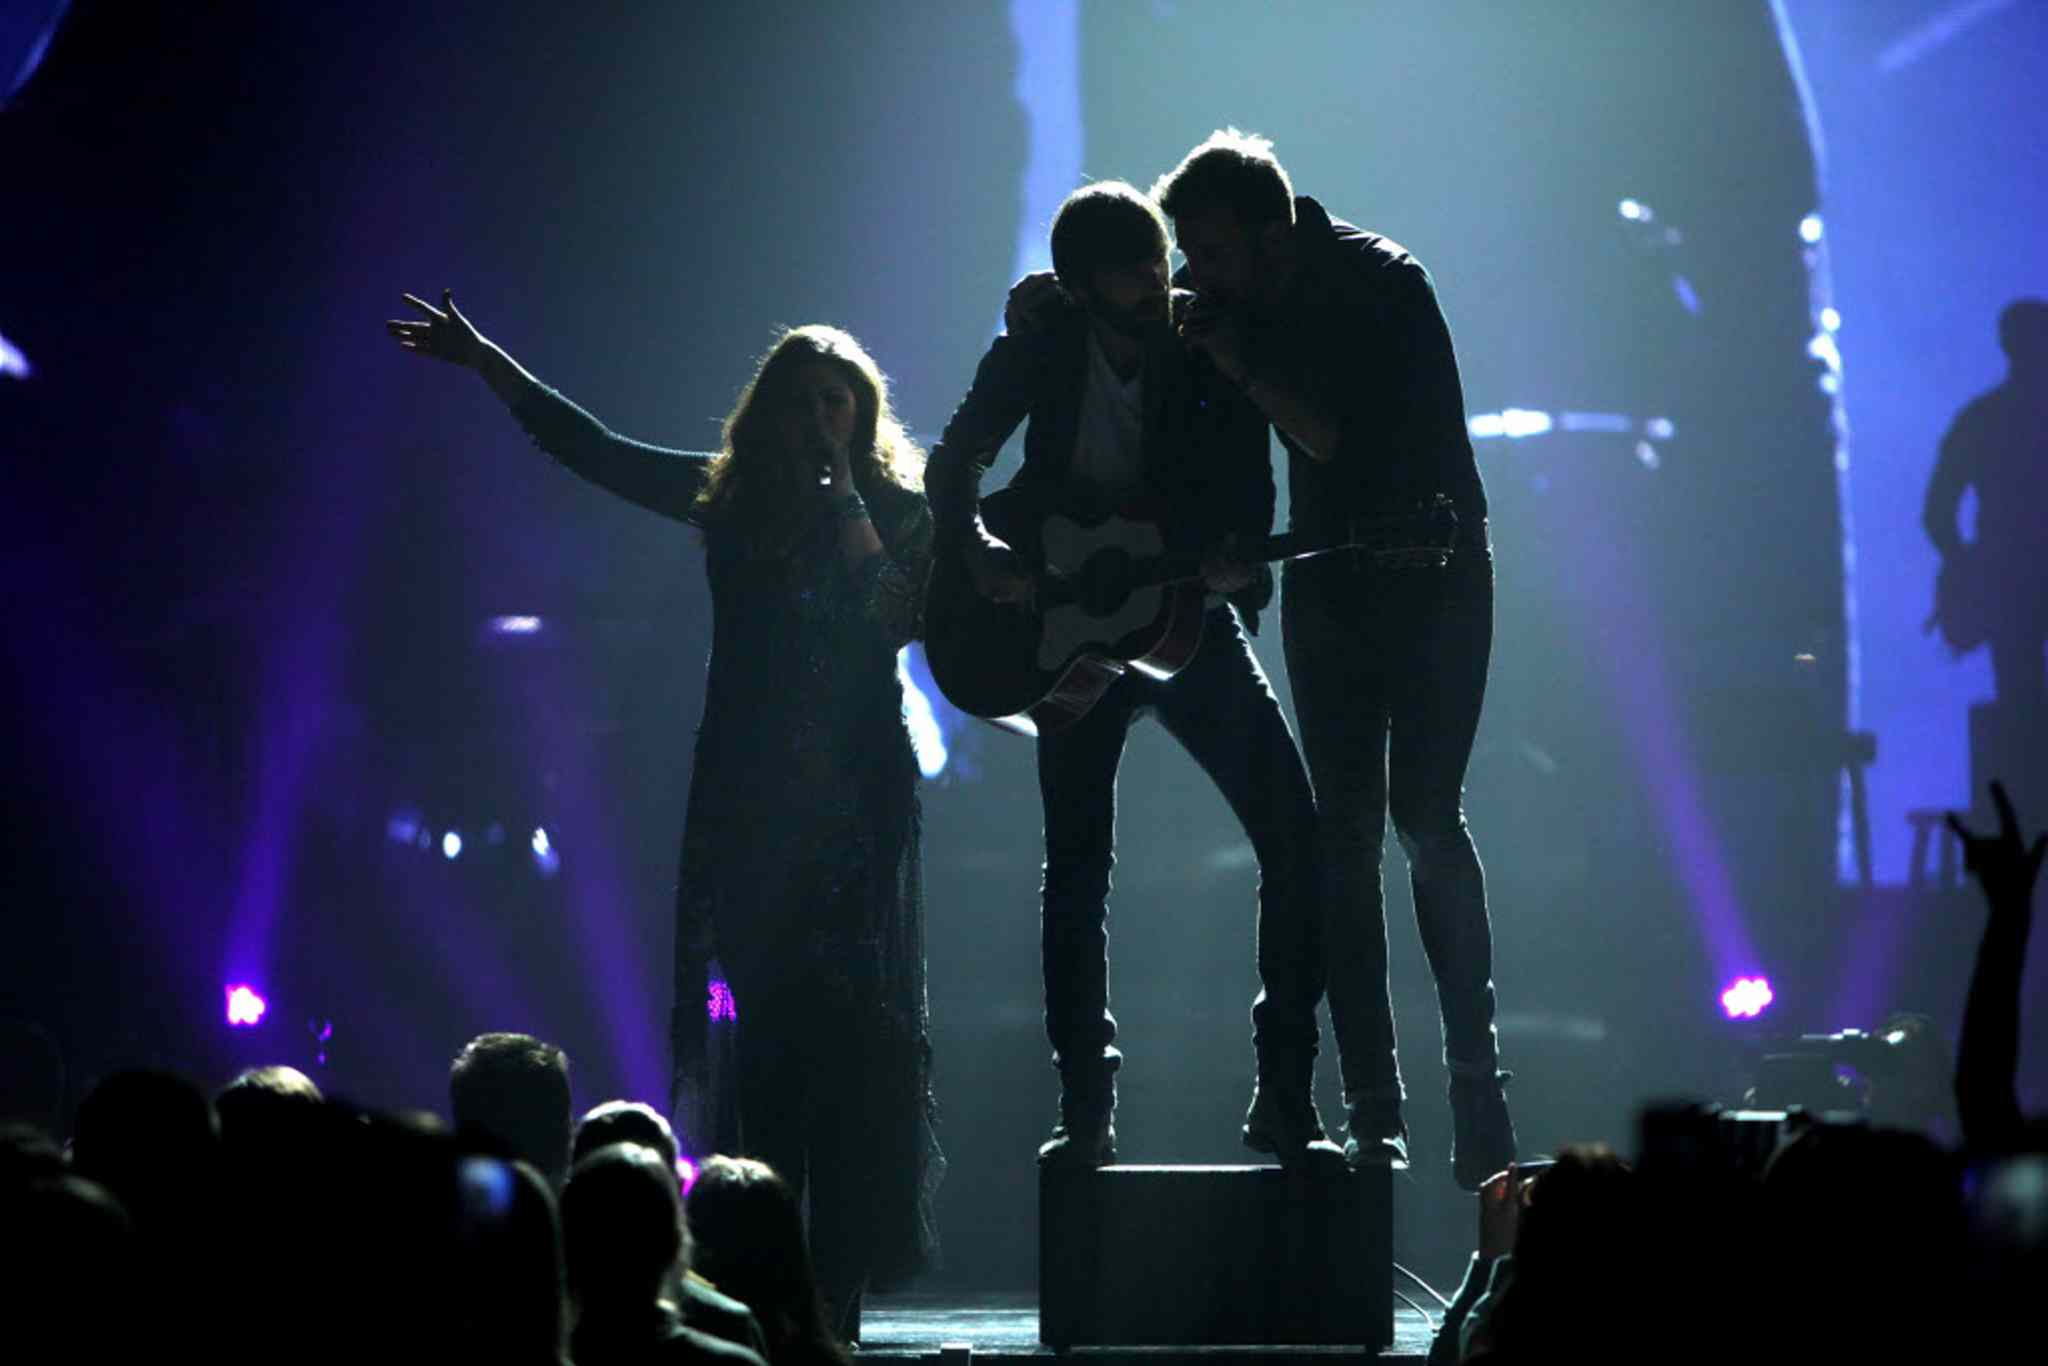 Lady Antebellum performs at the MTS Centre Wednesday evening, filling their set with huge hits, lesser-known gems, and notable covers.